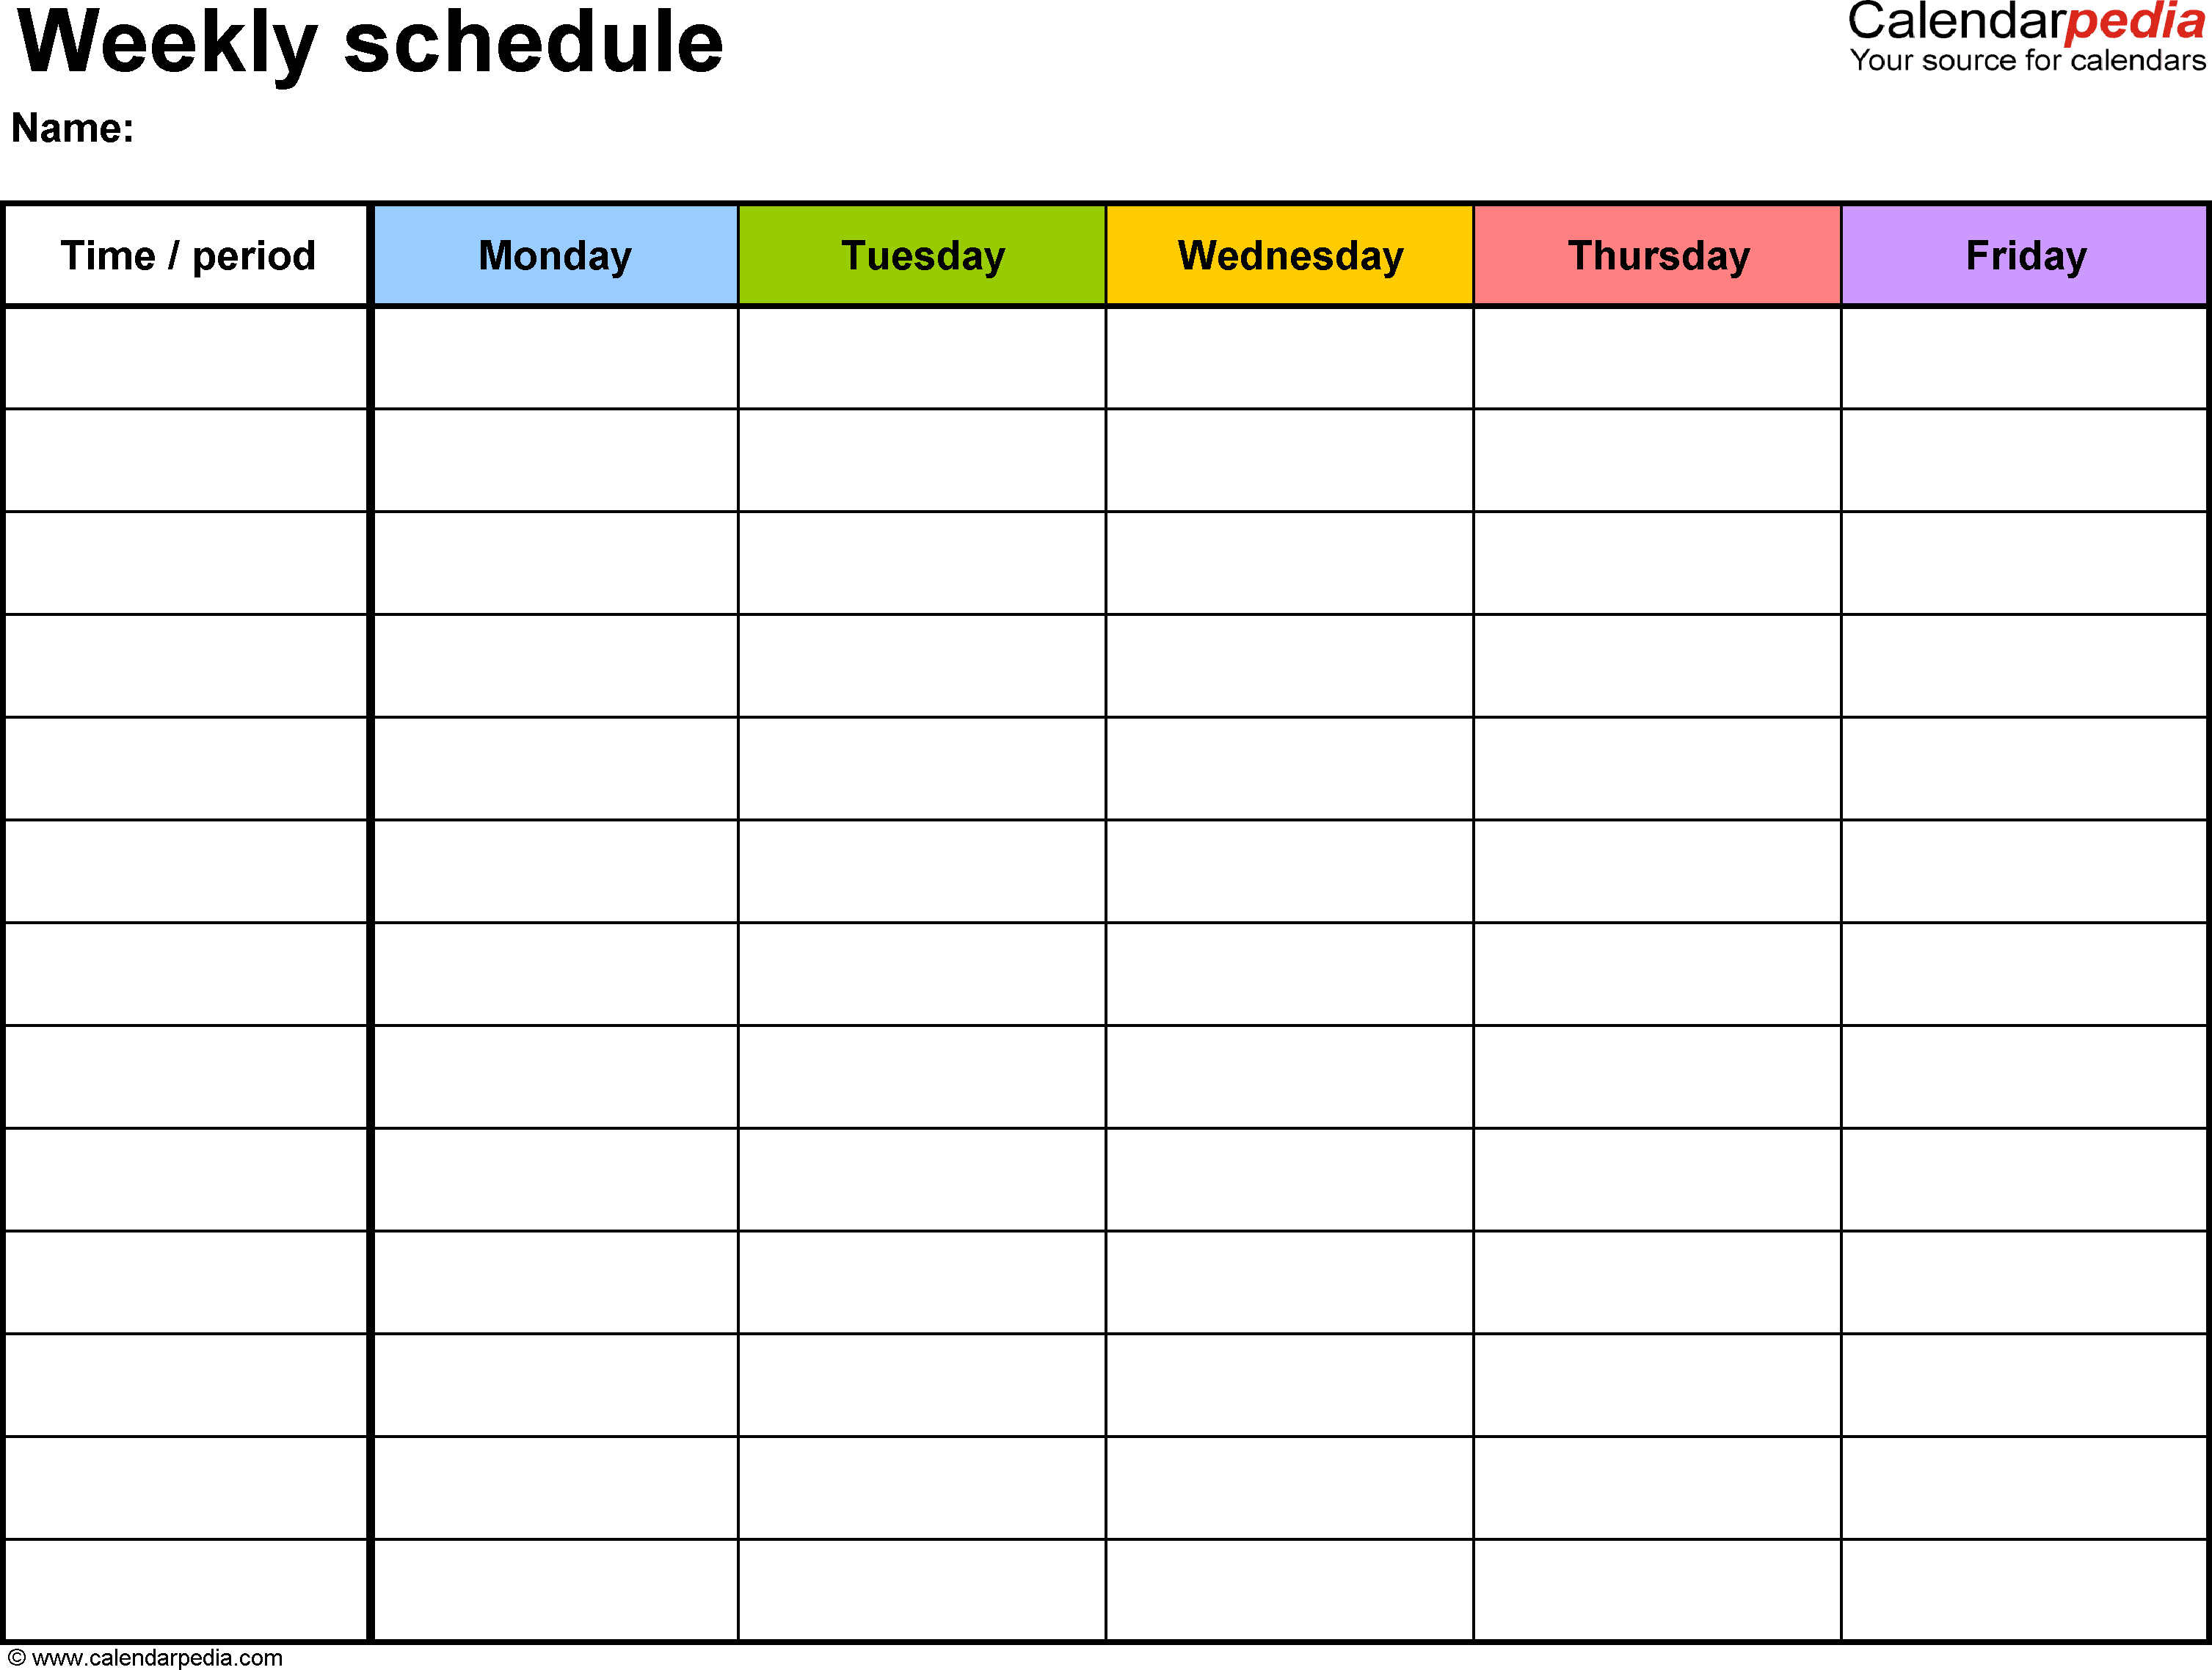 Free Weekly Schedule Templates For Pdf - 18 Templates in Cute Homework Schedule Template Printable